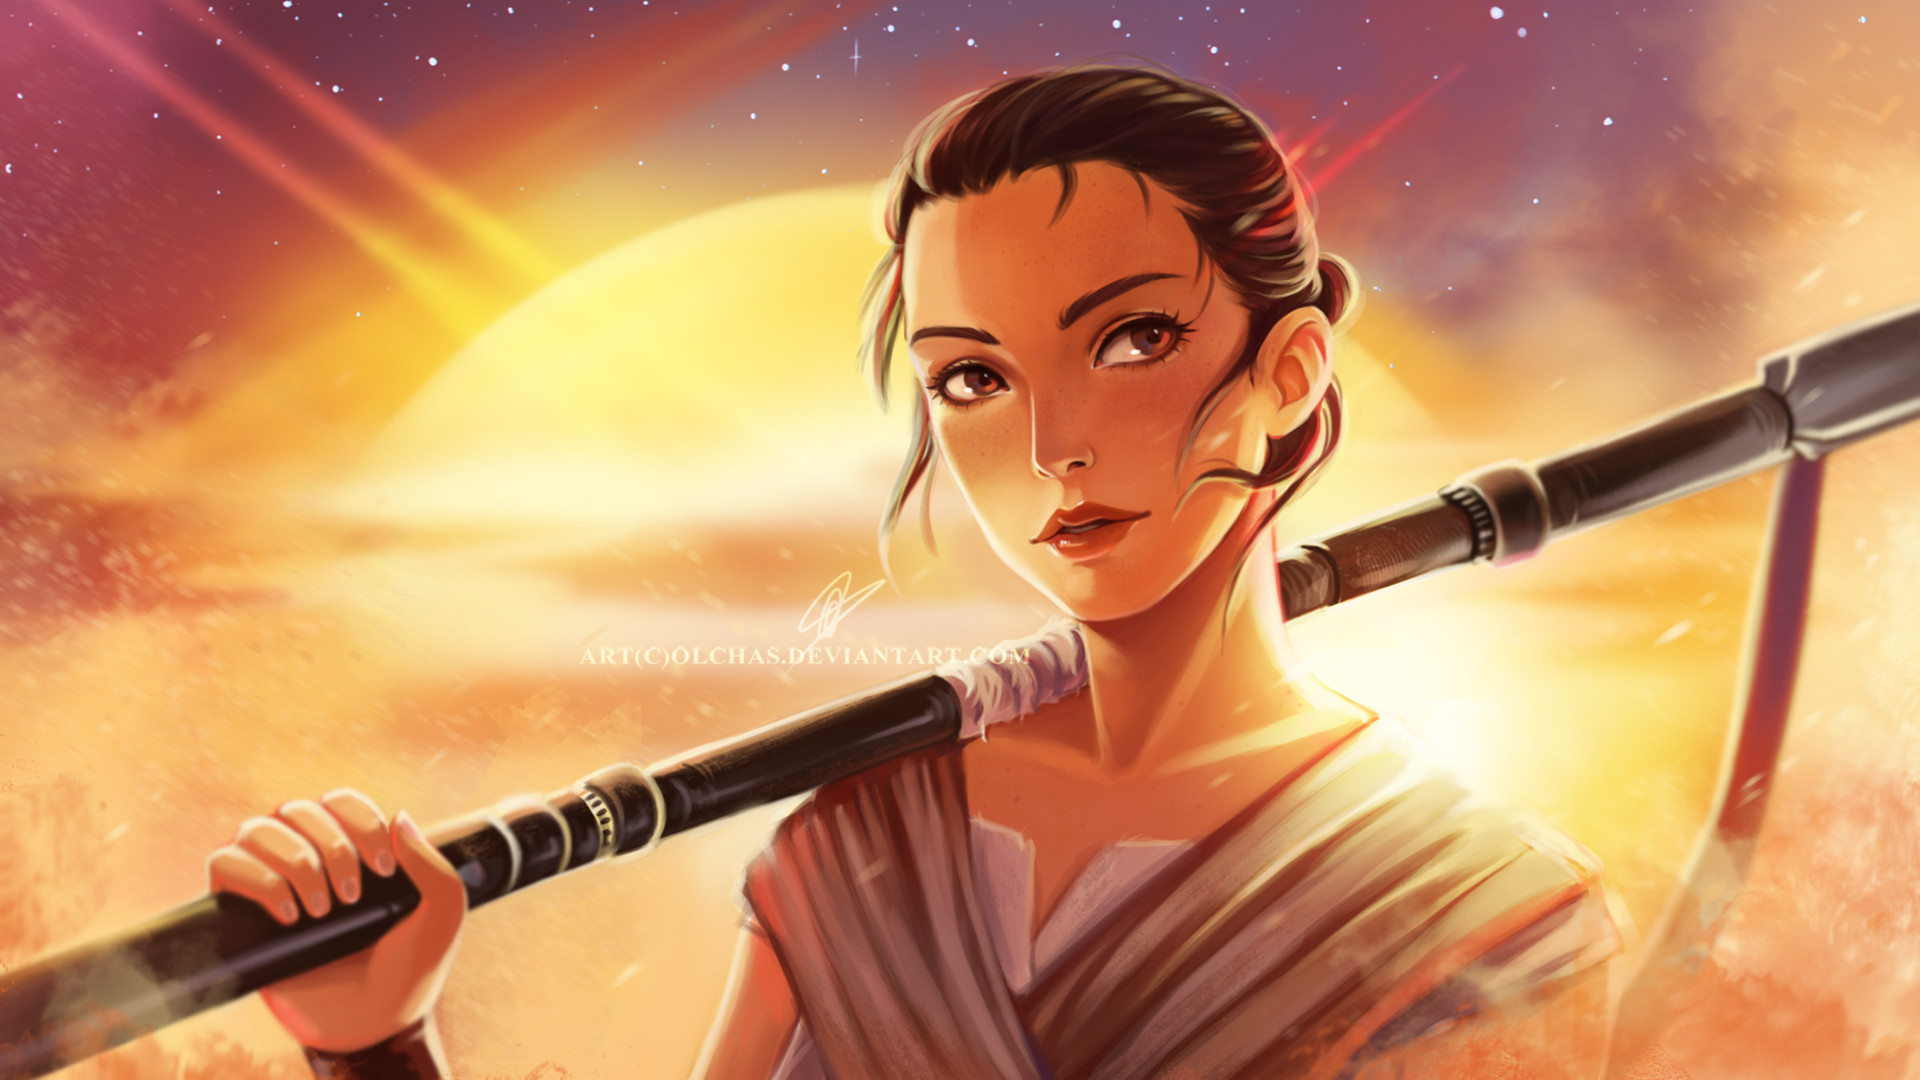 Olga solovian star wars 7 rey wallpaper by olchas